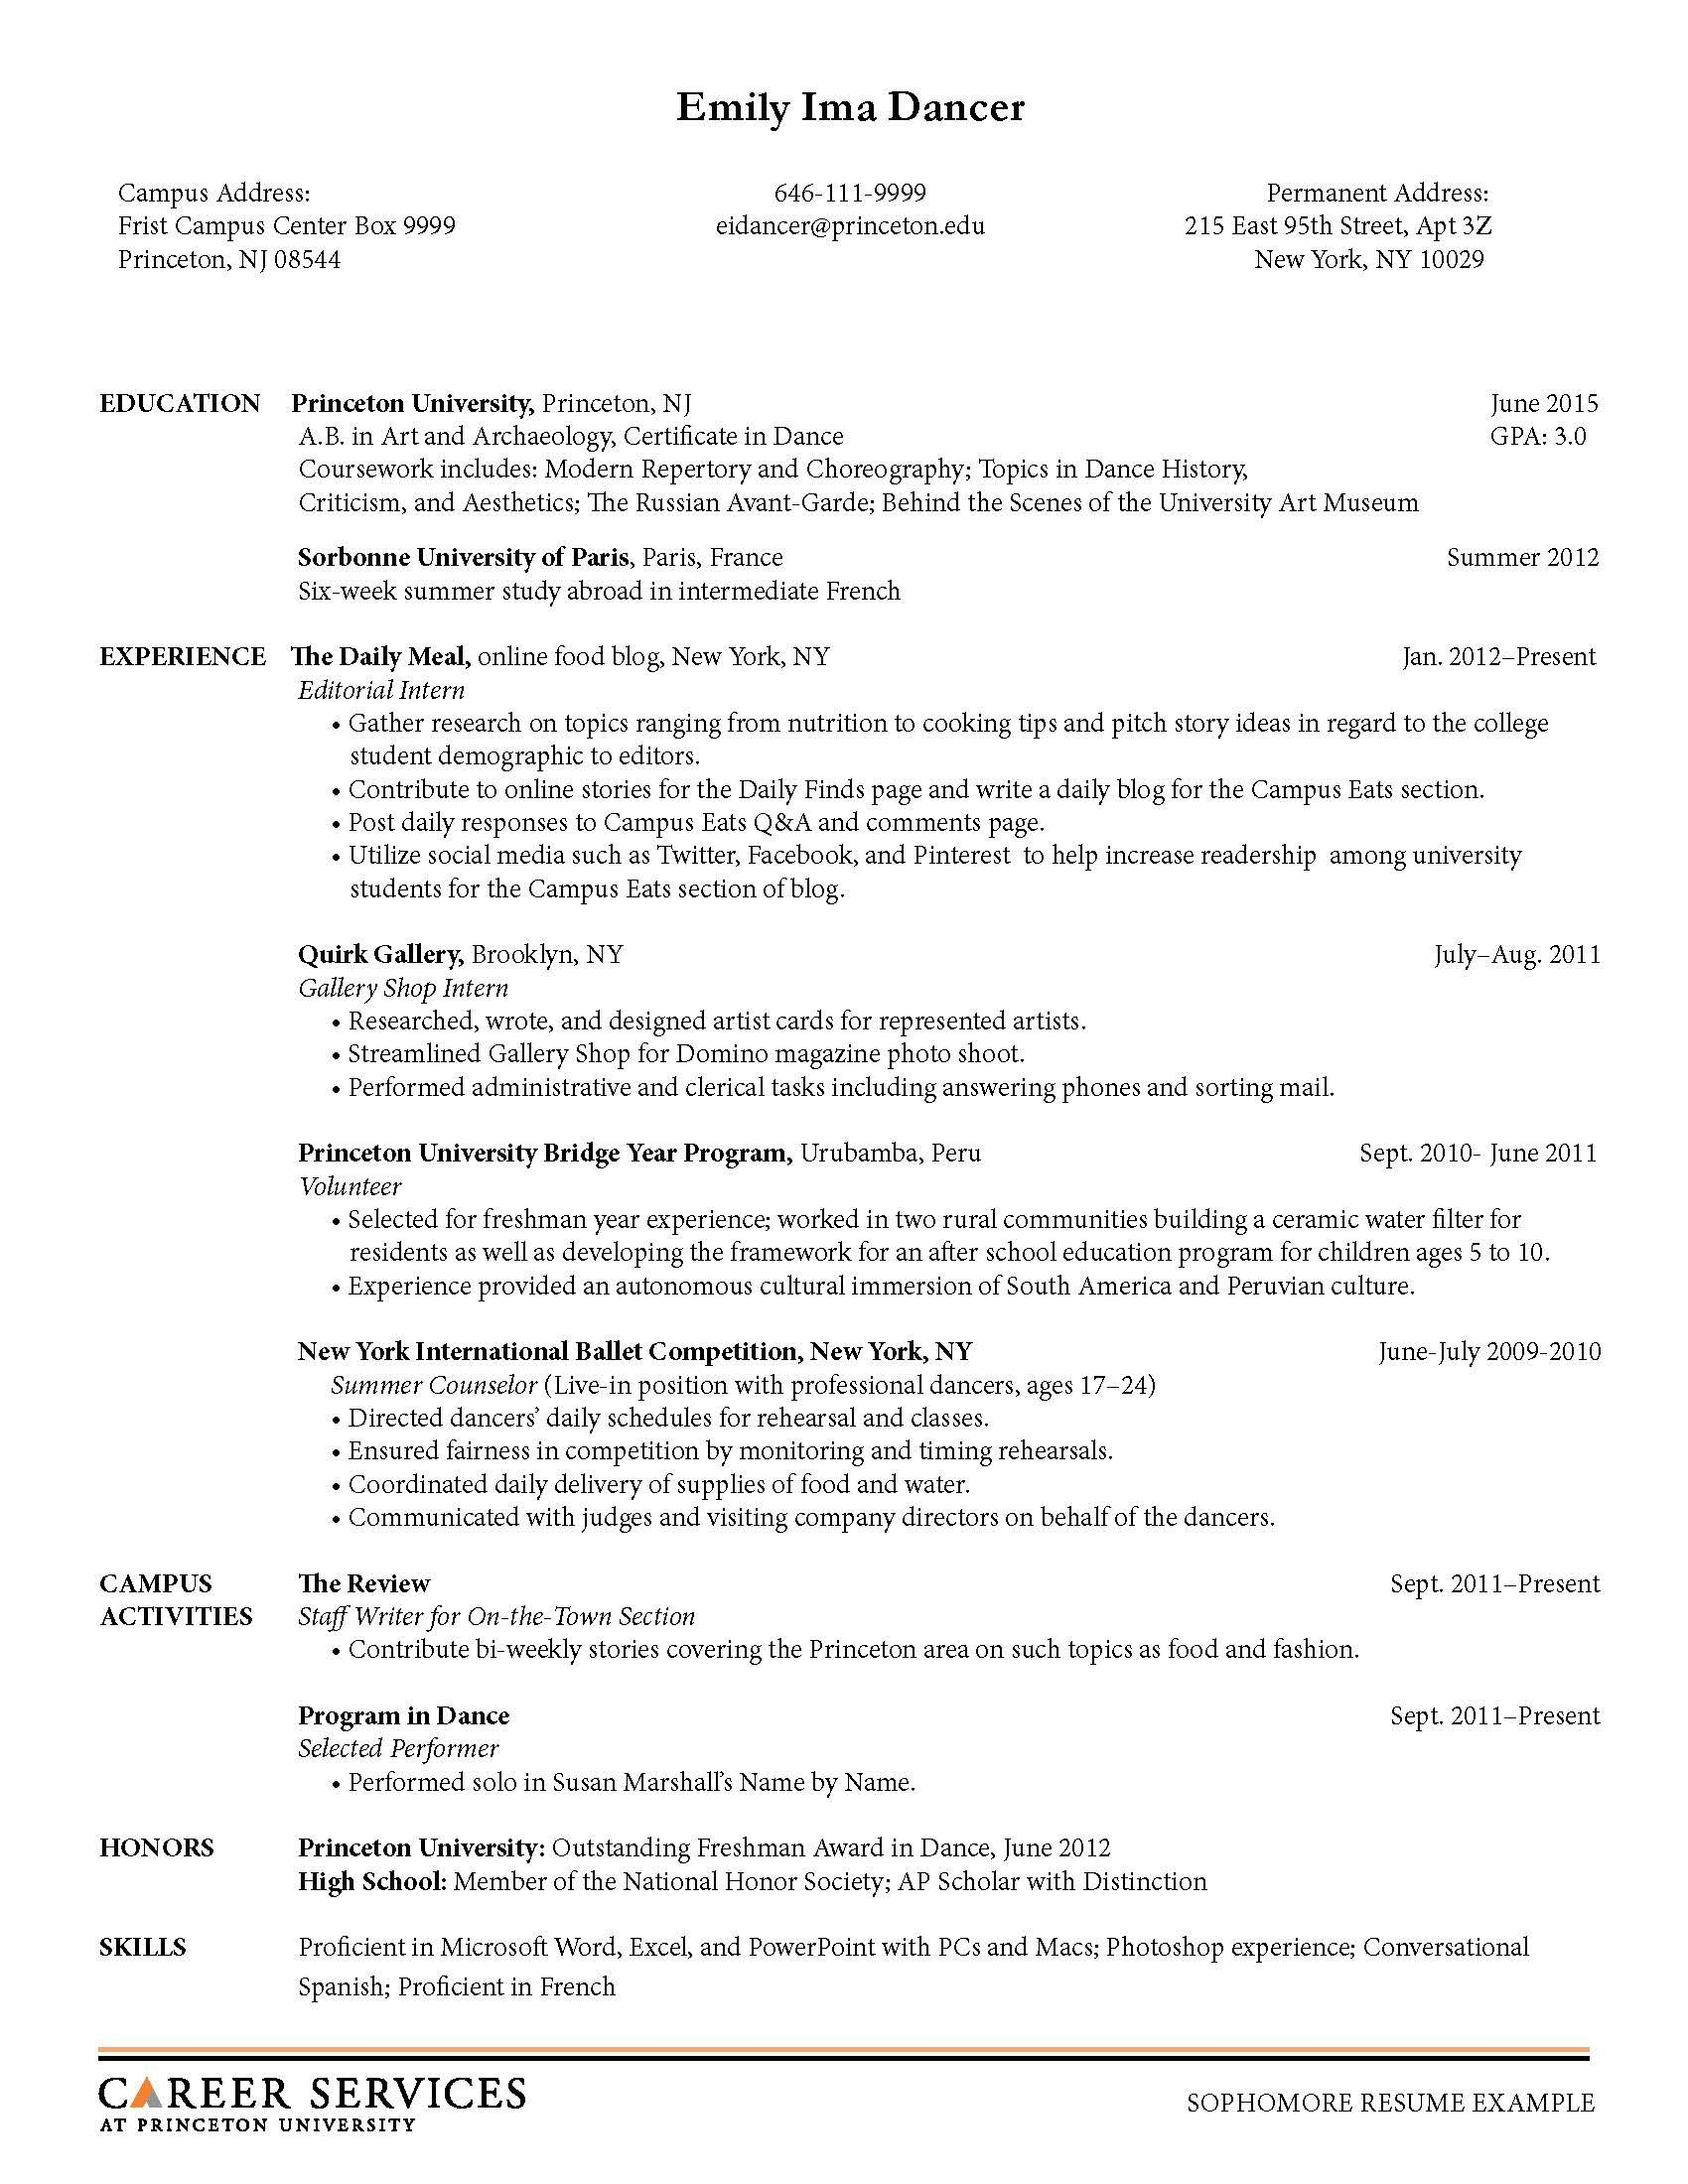 Opposenewapstandardsus  Prepossessing Sample Resume Resume And Career On Pinterest With Great How Create A Resume Besides Resume Gaps Furthermore Law Enforcement Resumes With Cute Resume For Teenagers Also Best Free Online Resume Builder In Addition Resume Secretary And Bank Branch Manager Resume As Well As Resume Create Additionally Real Estate Paralegal Resume From Pinterestcom With Opposenewapstandardsus  Great Sample Resume Resume And Career On Pinterest With Cute How Create A Resume Besides Resume Gaps Furthermore Law Enforcement Resumes And Prepossessing Resume For Teenagers Also Best Free Online Resume Builder In Addition Resume Secretary From Pinterestcom